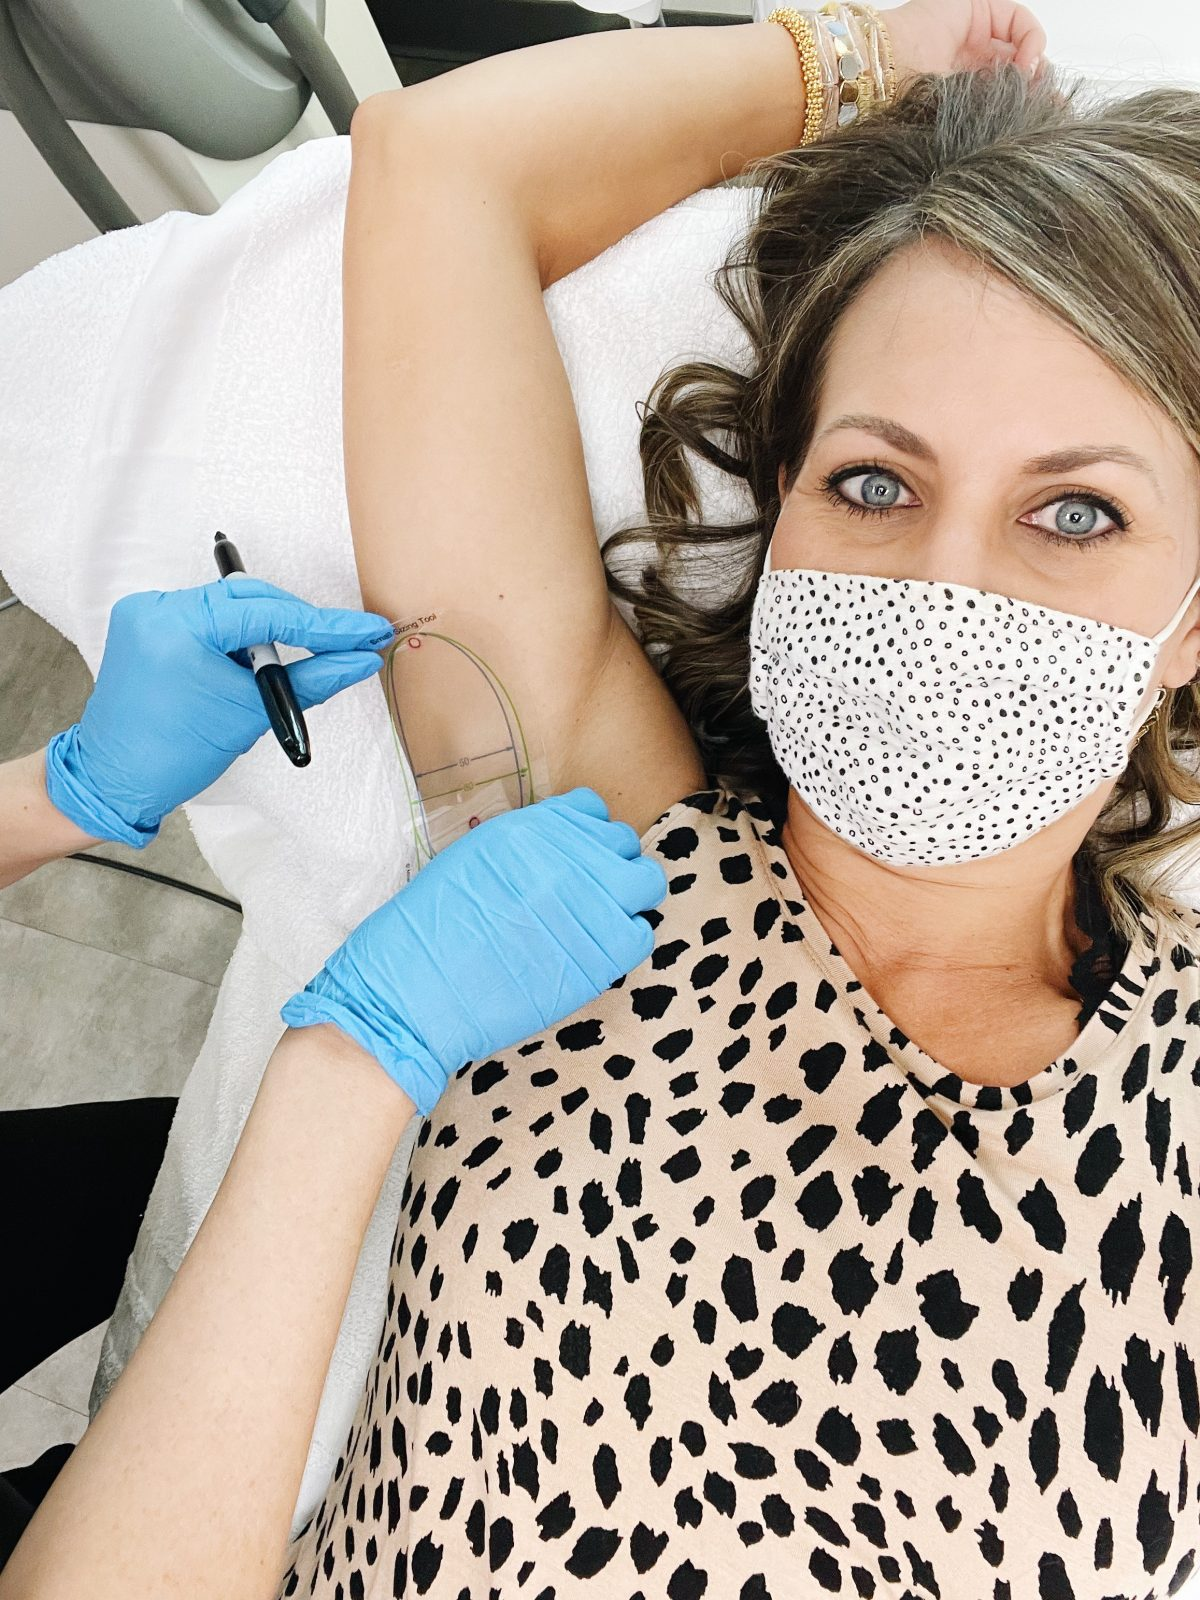 miradry treatment to reduce sweating and underarm odor. marking the treatment area